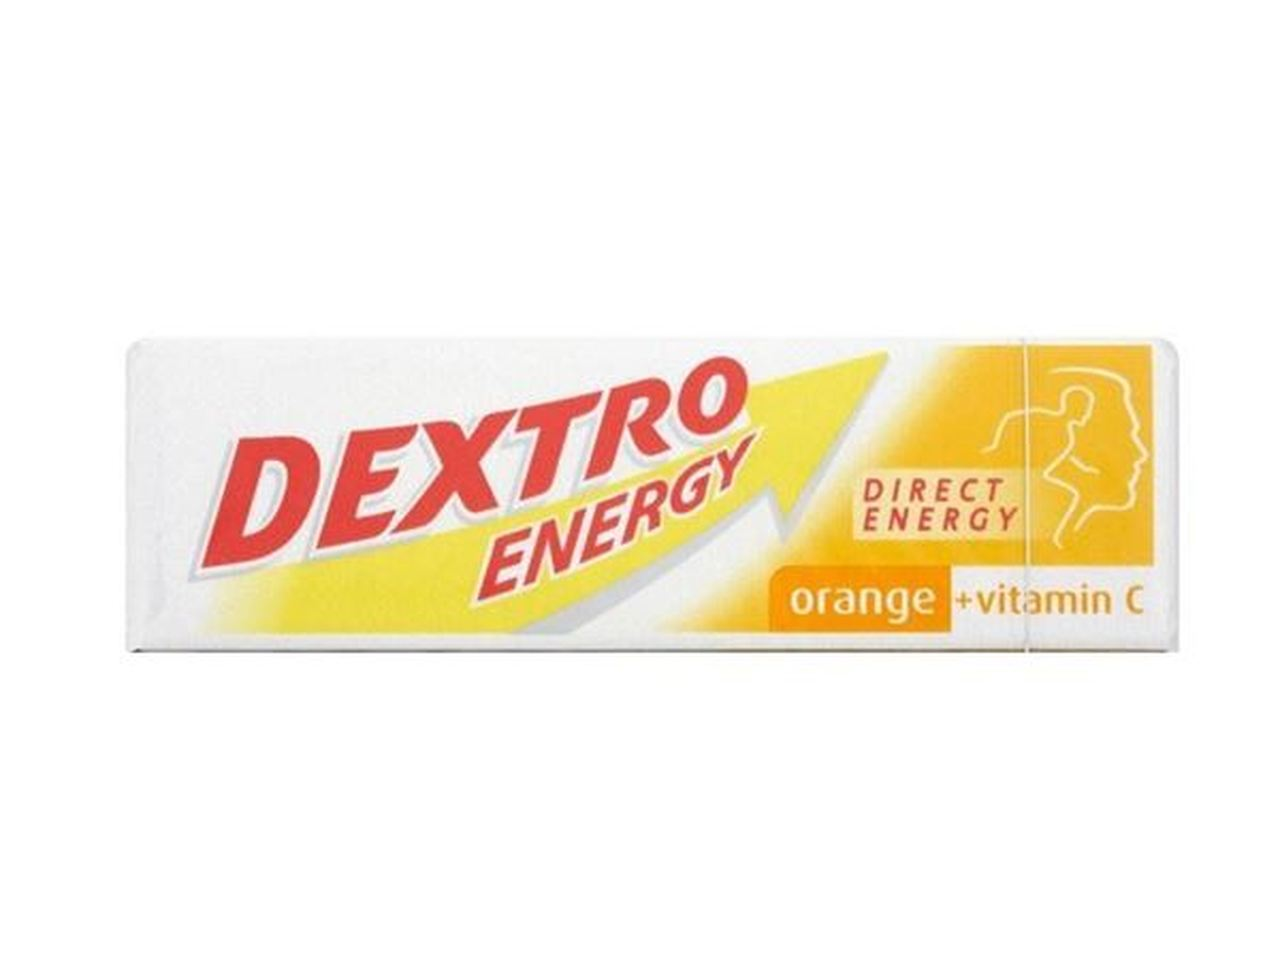 DEXTRO ENERGY ORANGE AND VITAMIN C TABLETS  (24's)